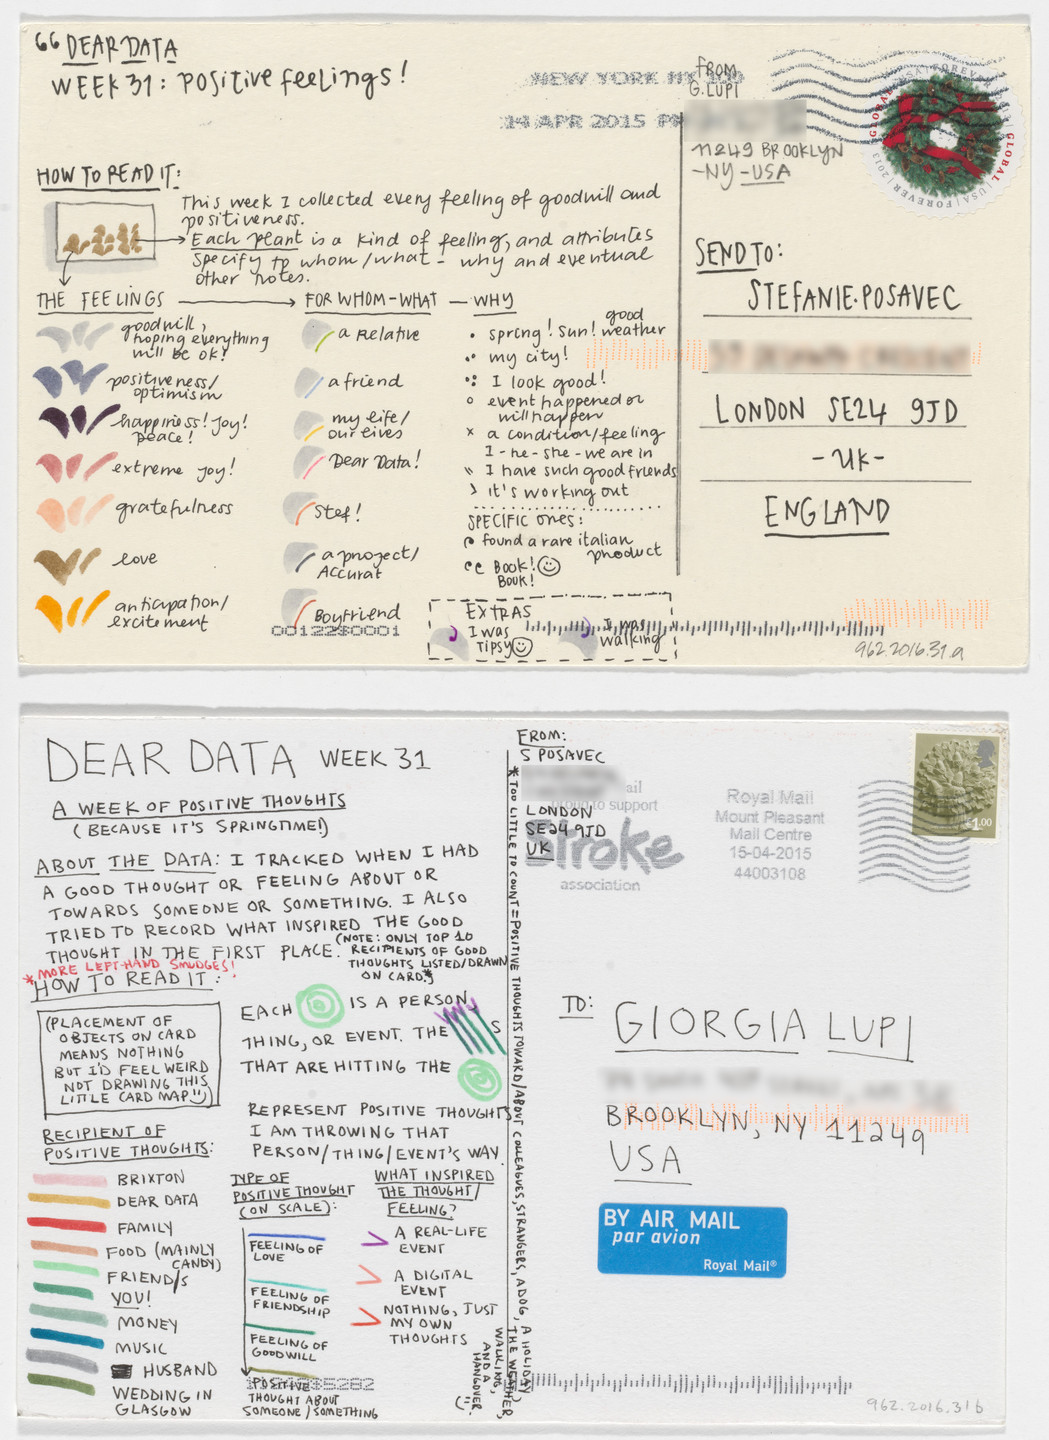 Giorgia Lupi, Stefanie Posavec. Dear Data: Week 31 (Positive Feelings / A Week of Positive Thoughts). 2015